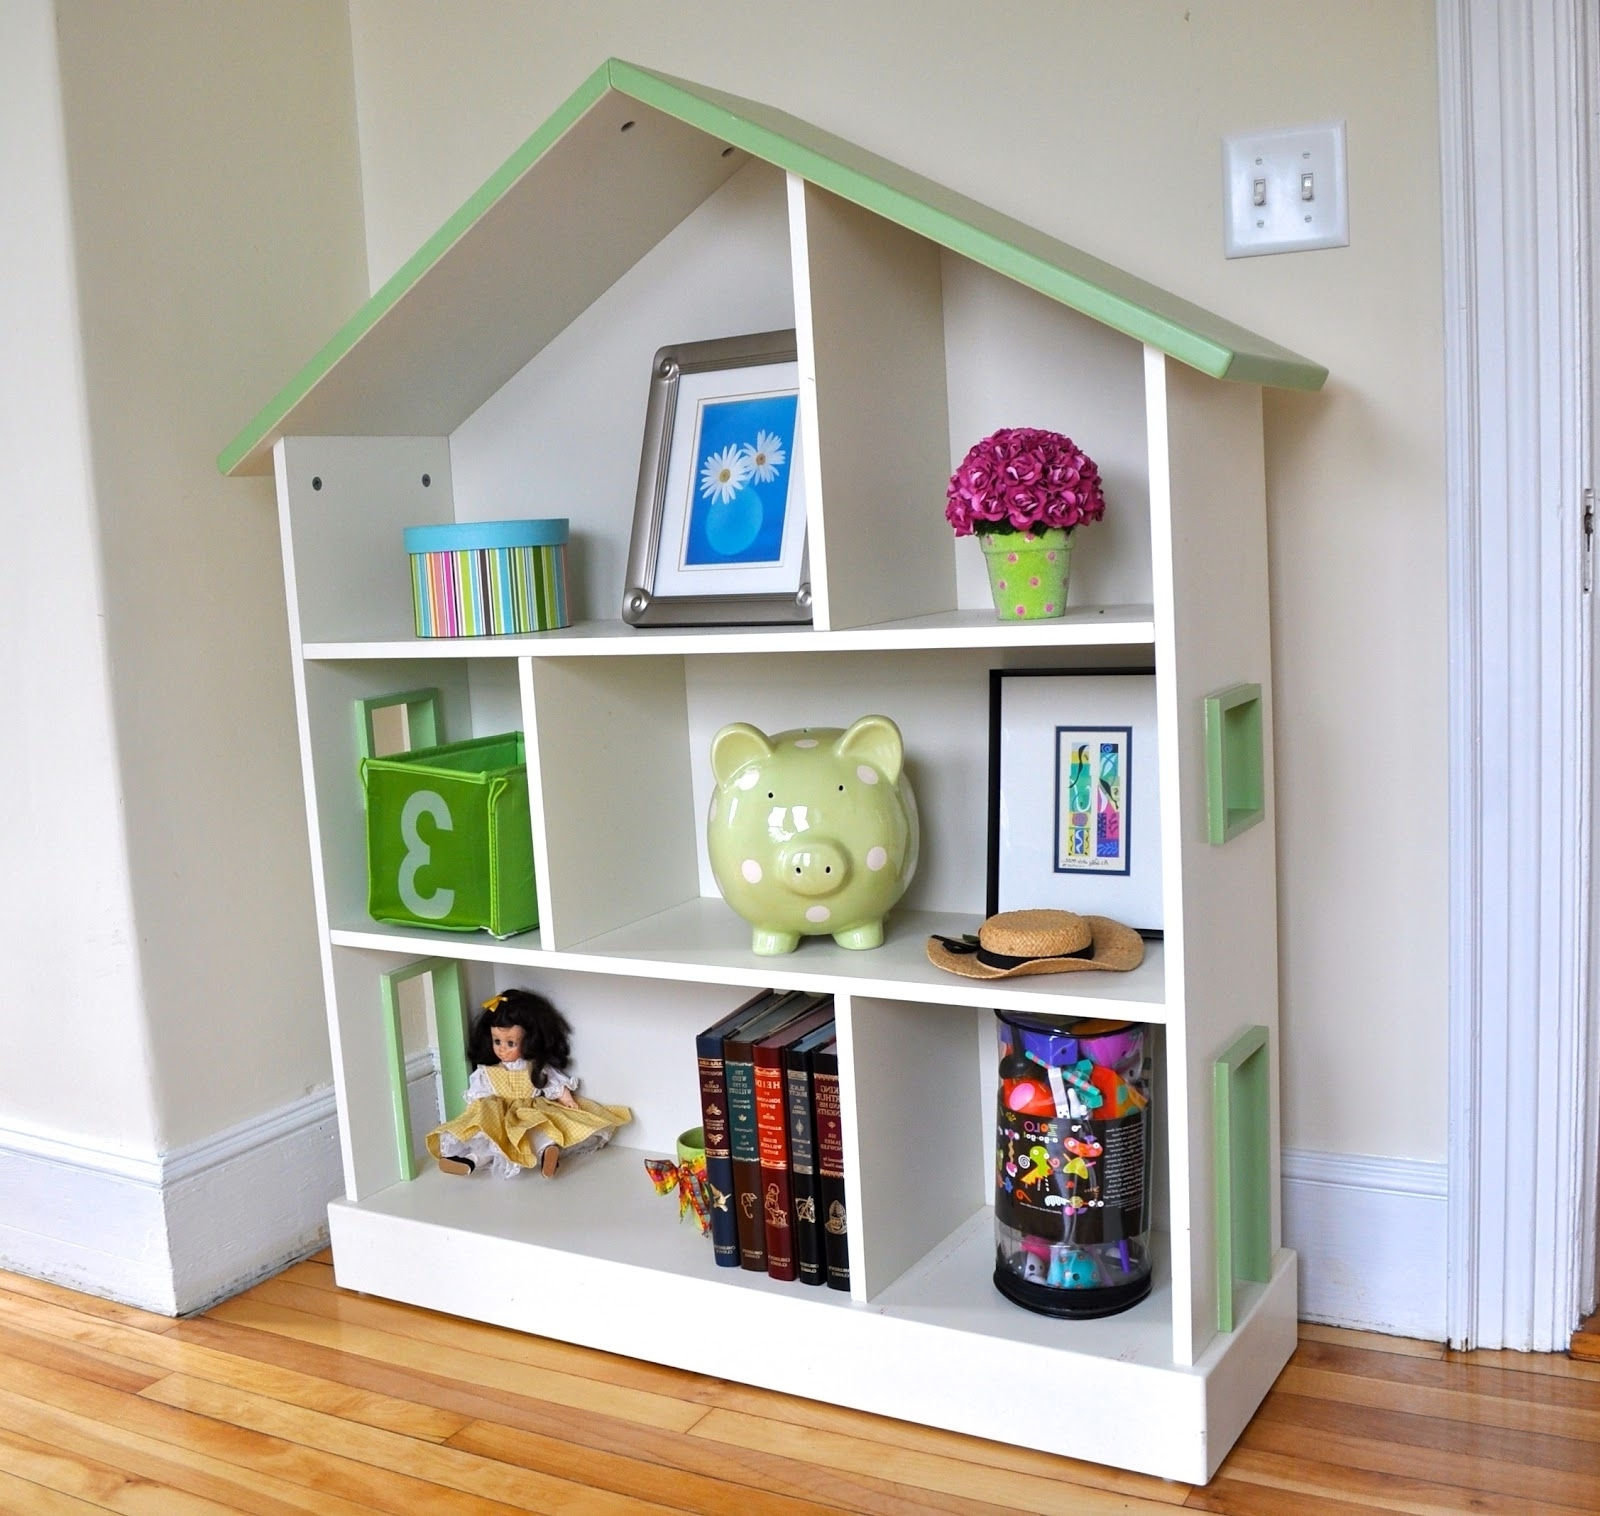 dollhouse bookshelf about best kidsampquot full home potterybarn furniture style blackampquot in barns bookshelves ideas painting bookcase ampquotpottery chair jennifer s piano barn design baby paint pottery additional grand with size house solutions of